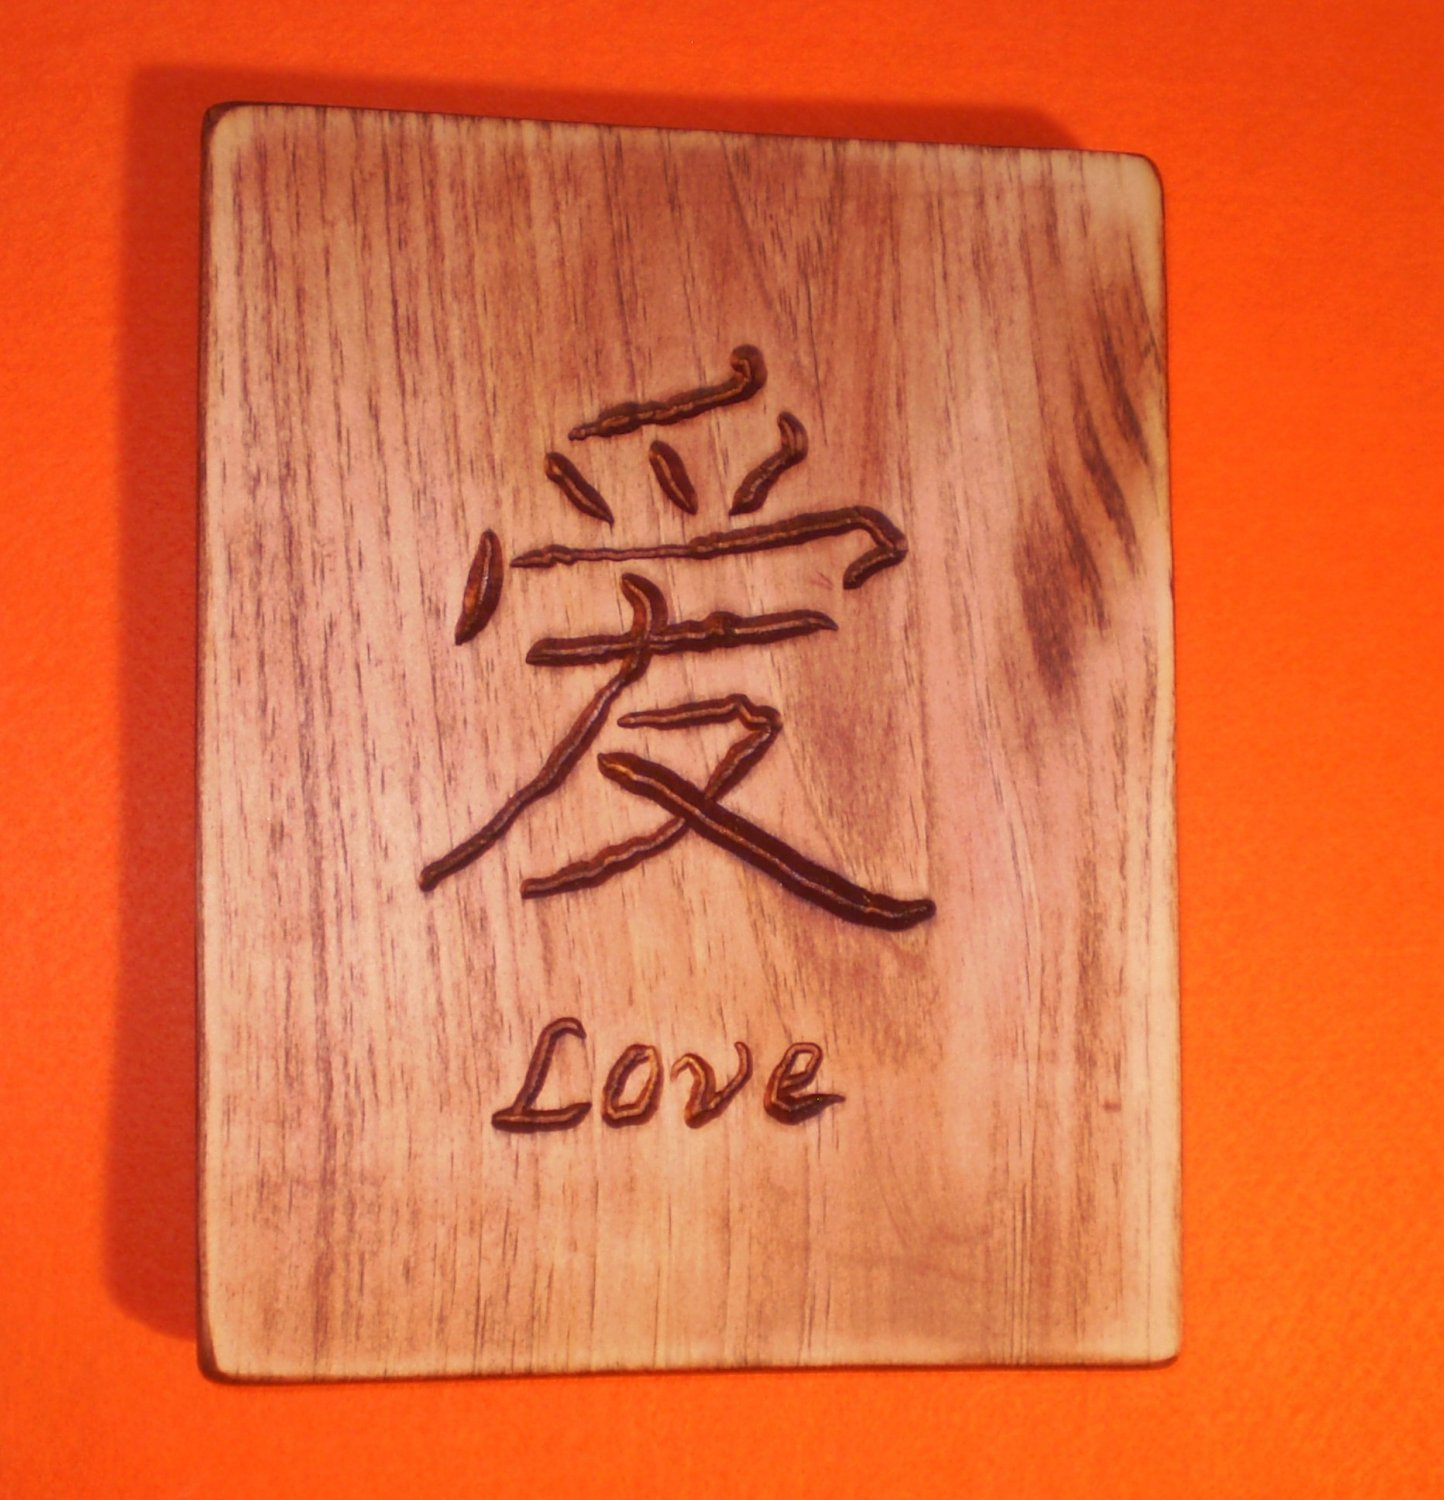 Mandarin Character for Love